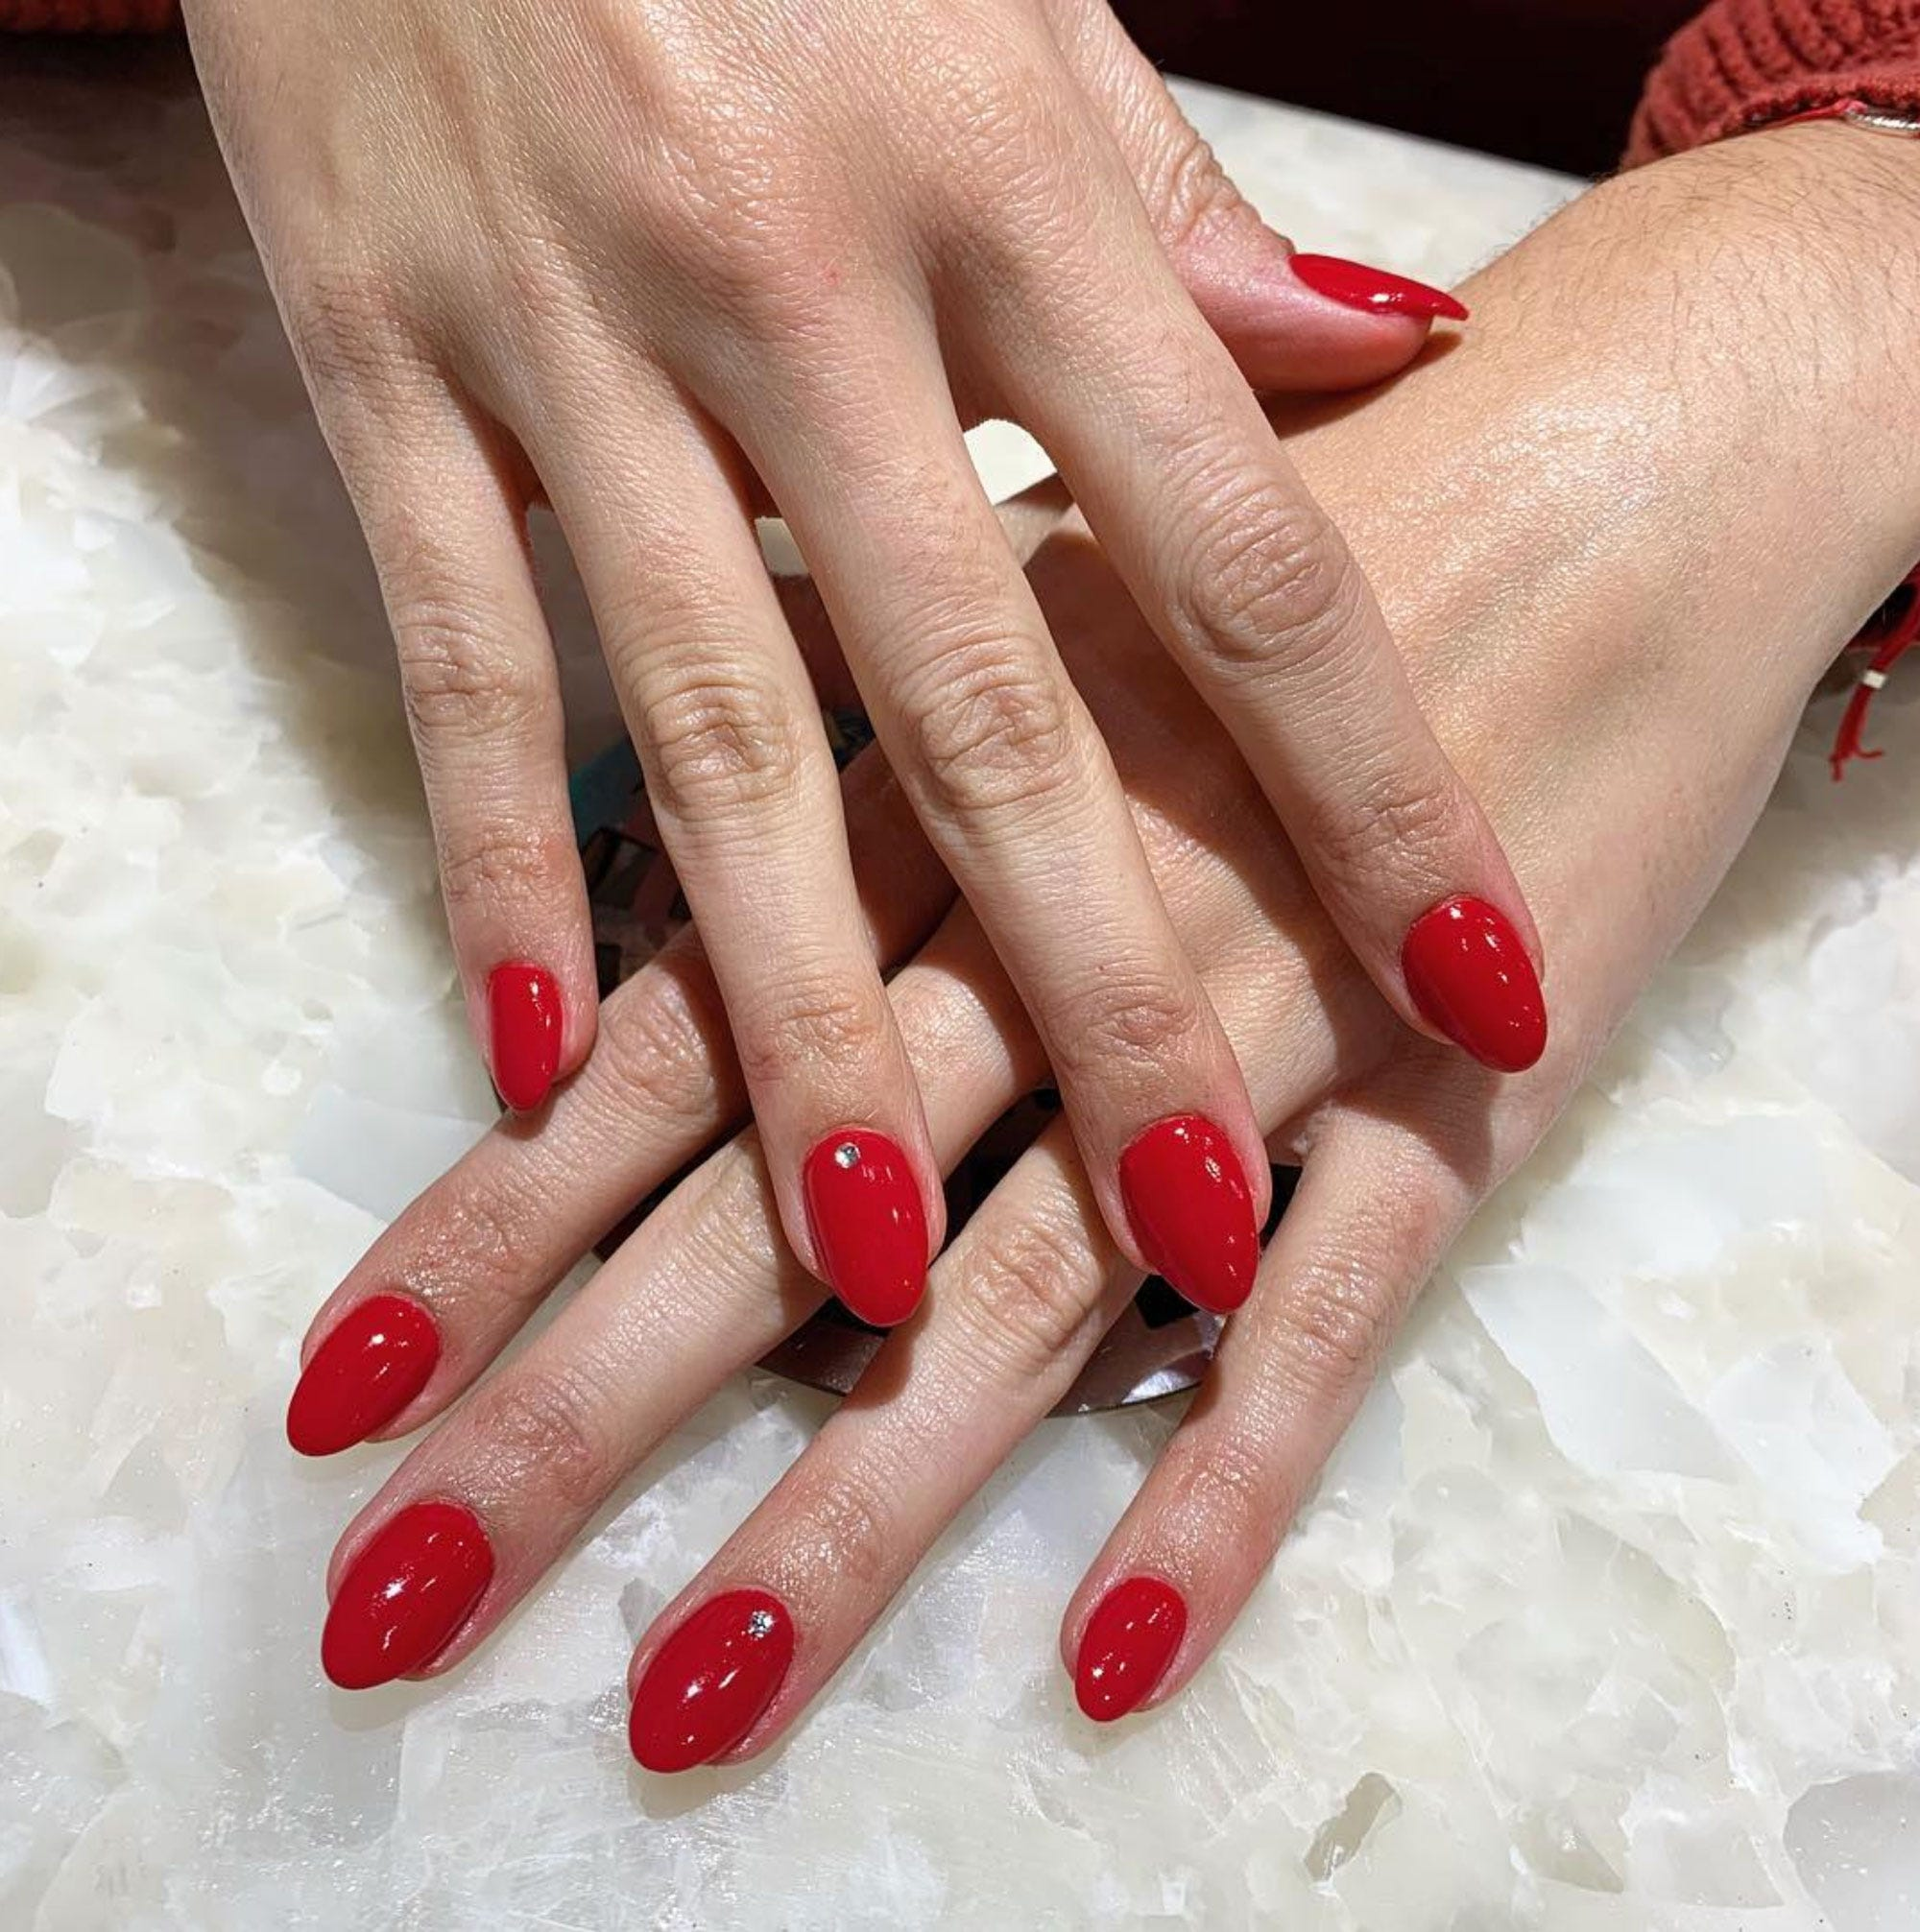 Powder Dipping The Clever New Manicure Method Taking Over From Gels